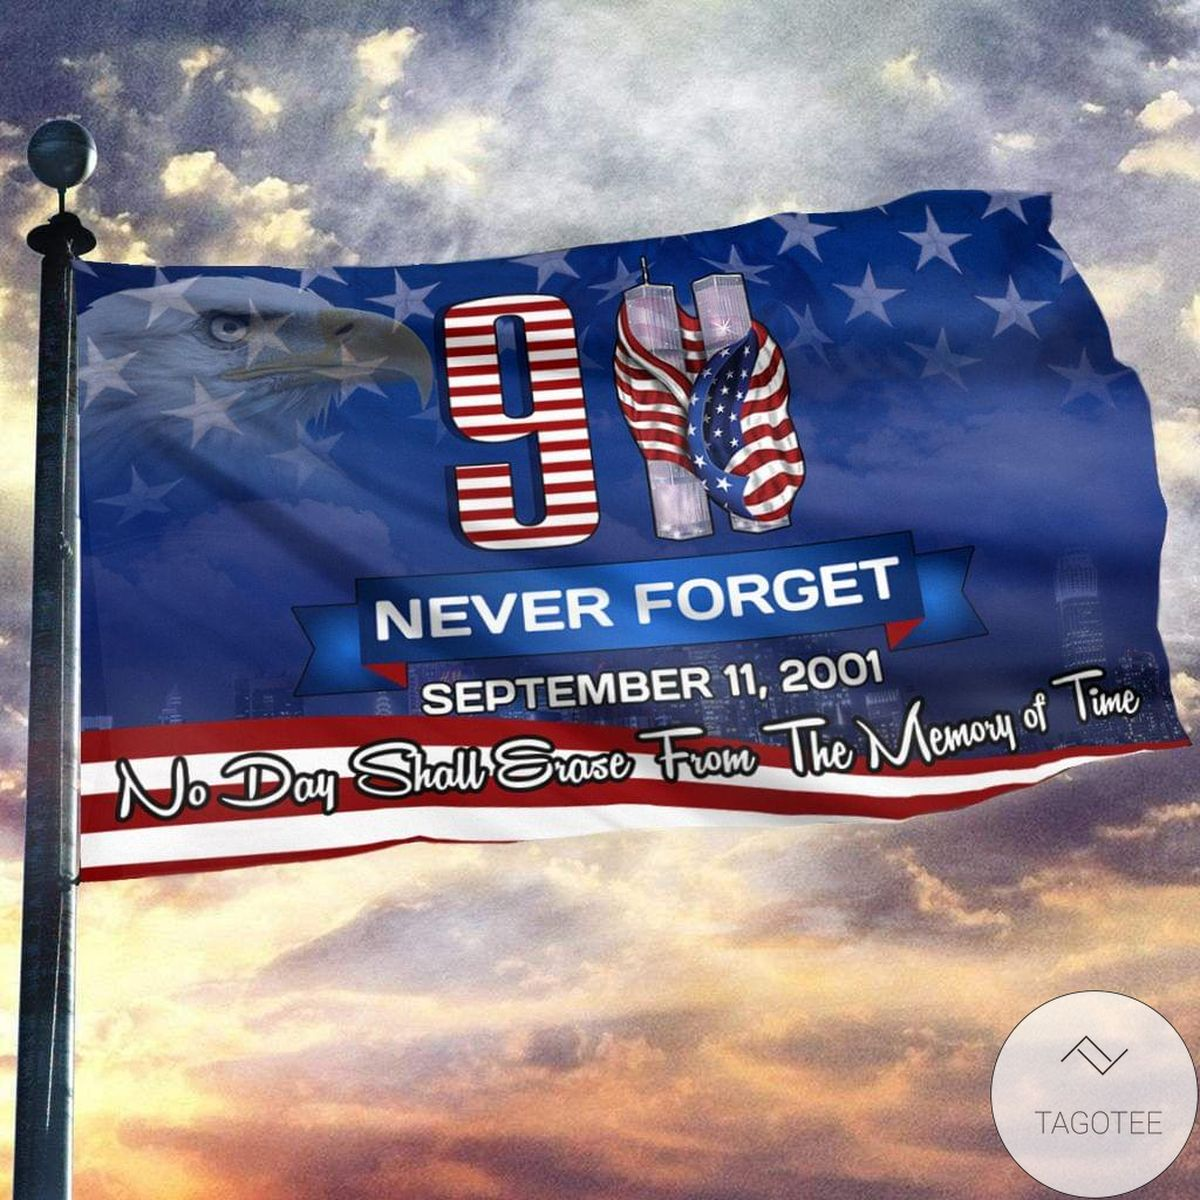 Never Forget September 11 So Day Shall Erase From The Memory Of Time House Flag